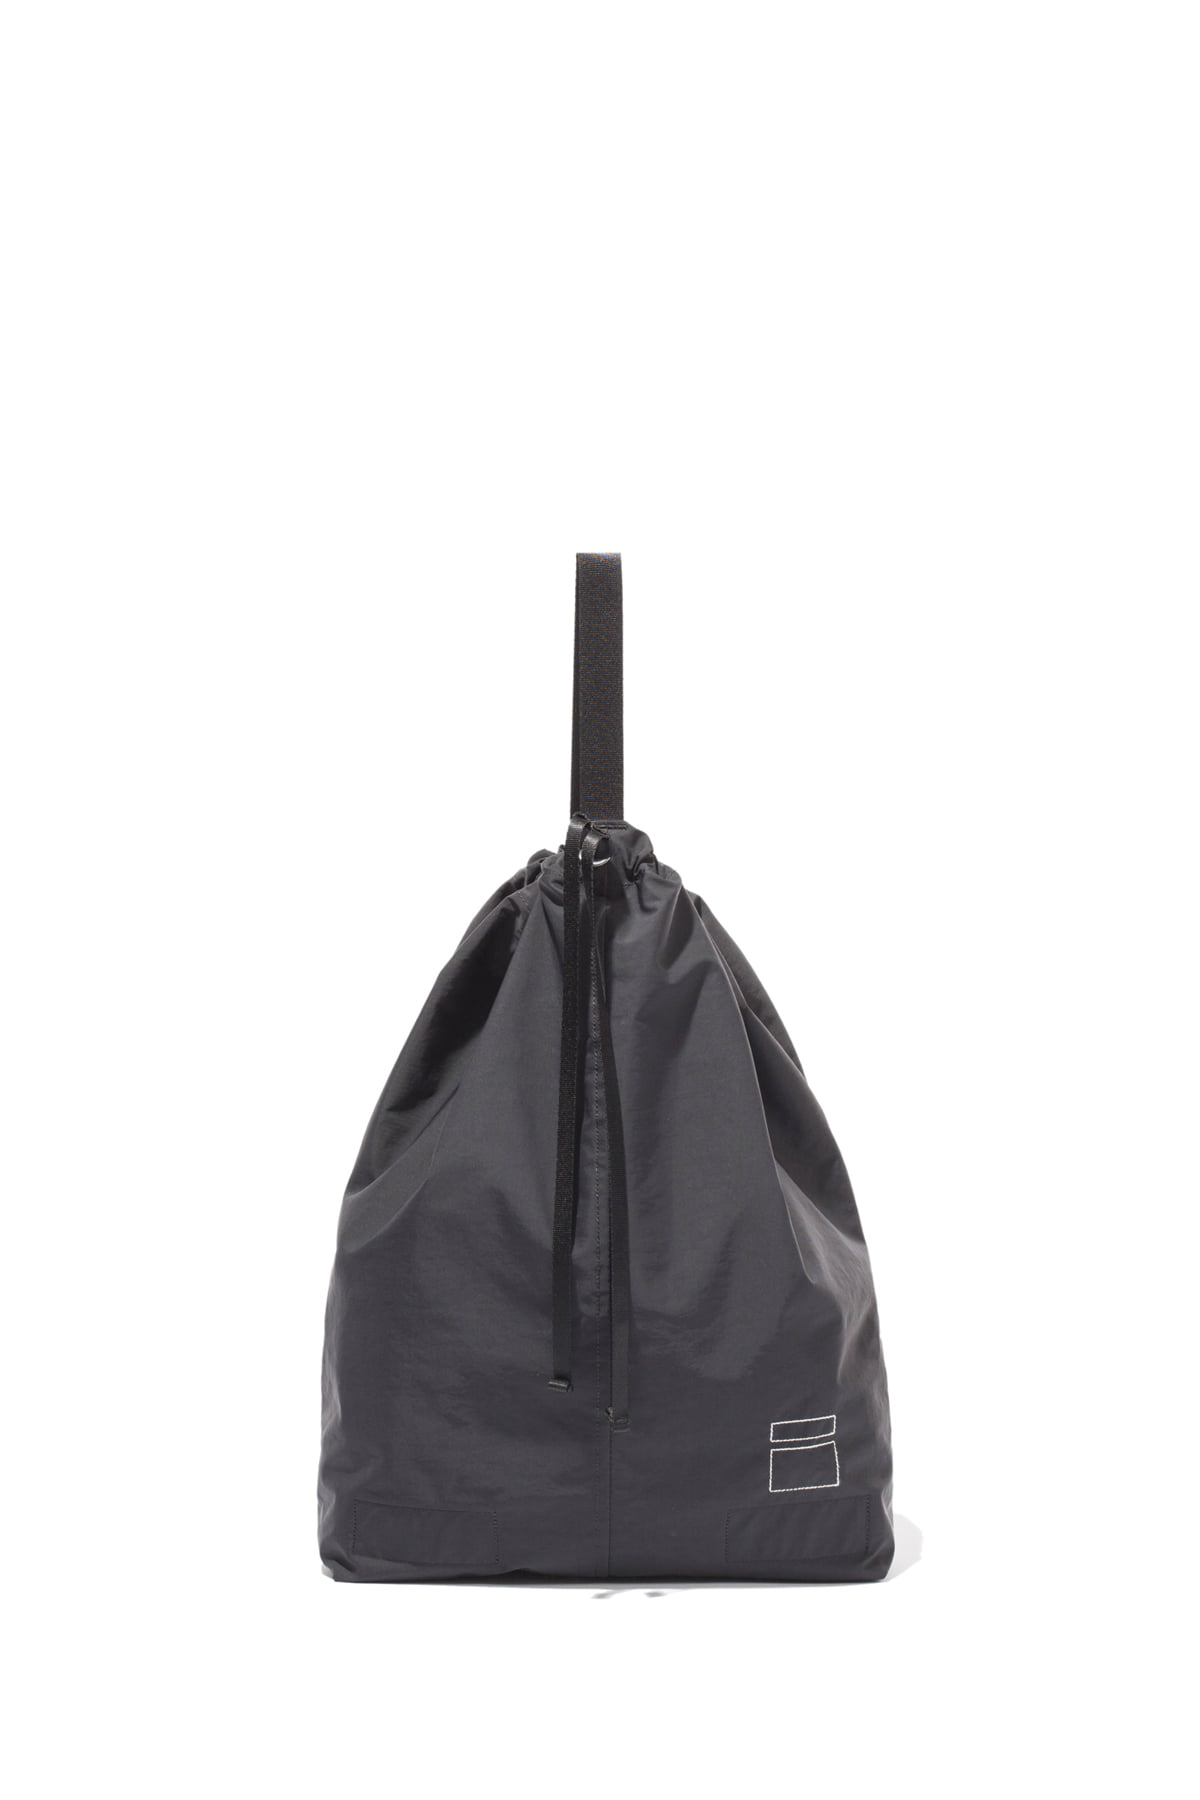 Blankof : BLG 01 6L Fisherman Bag 6 (Black)